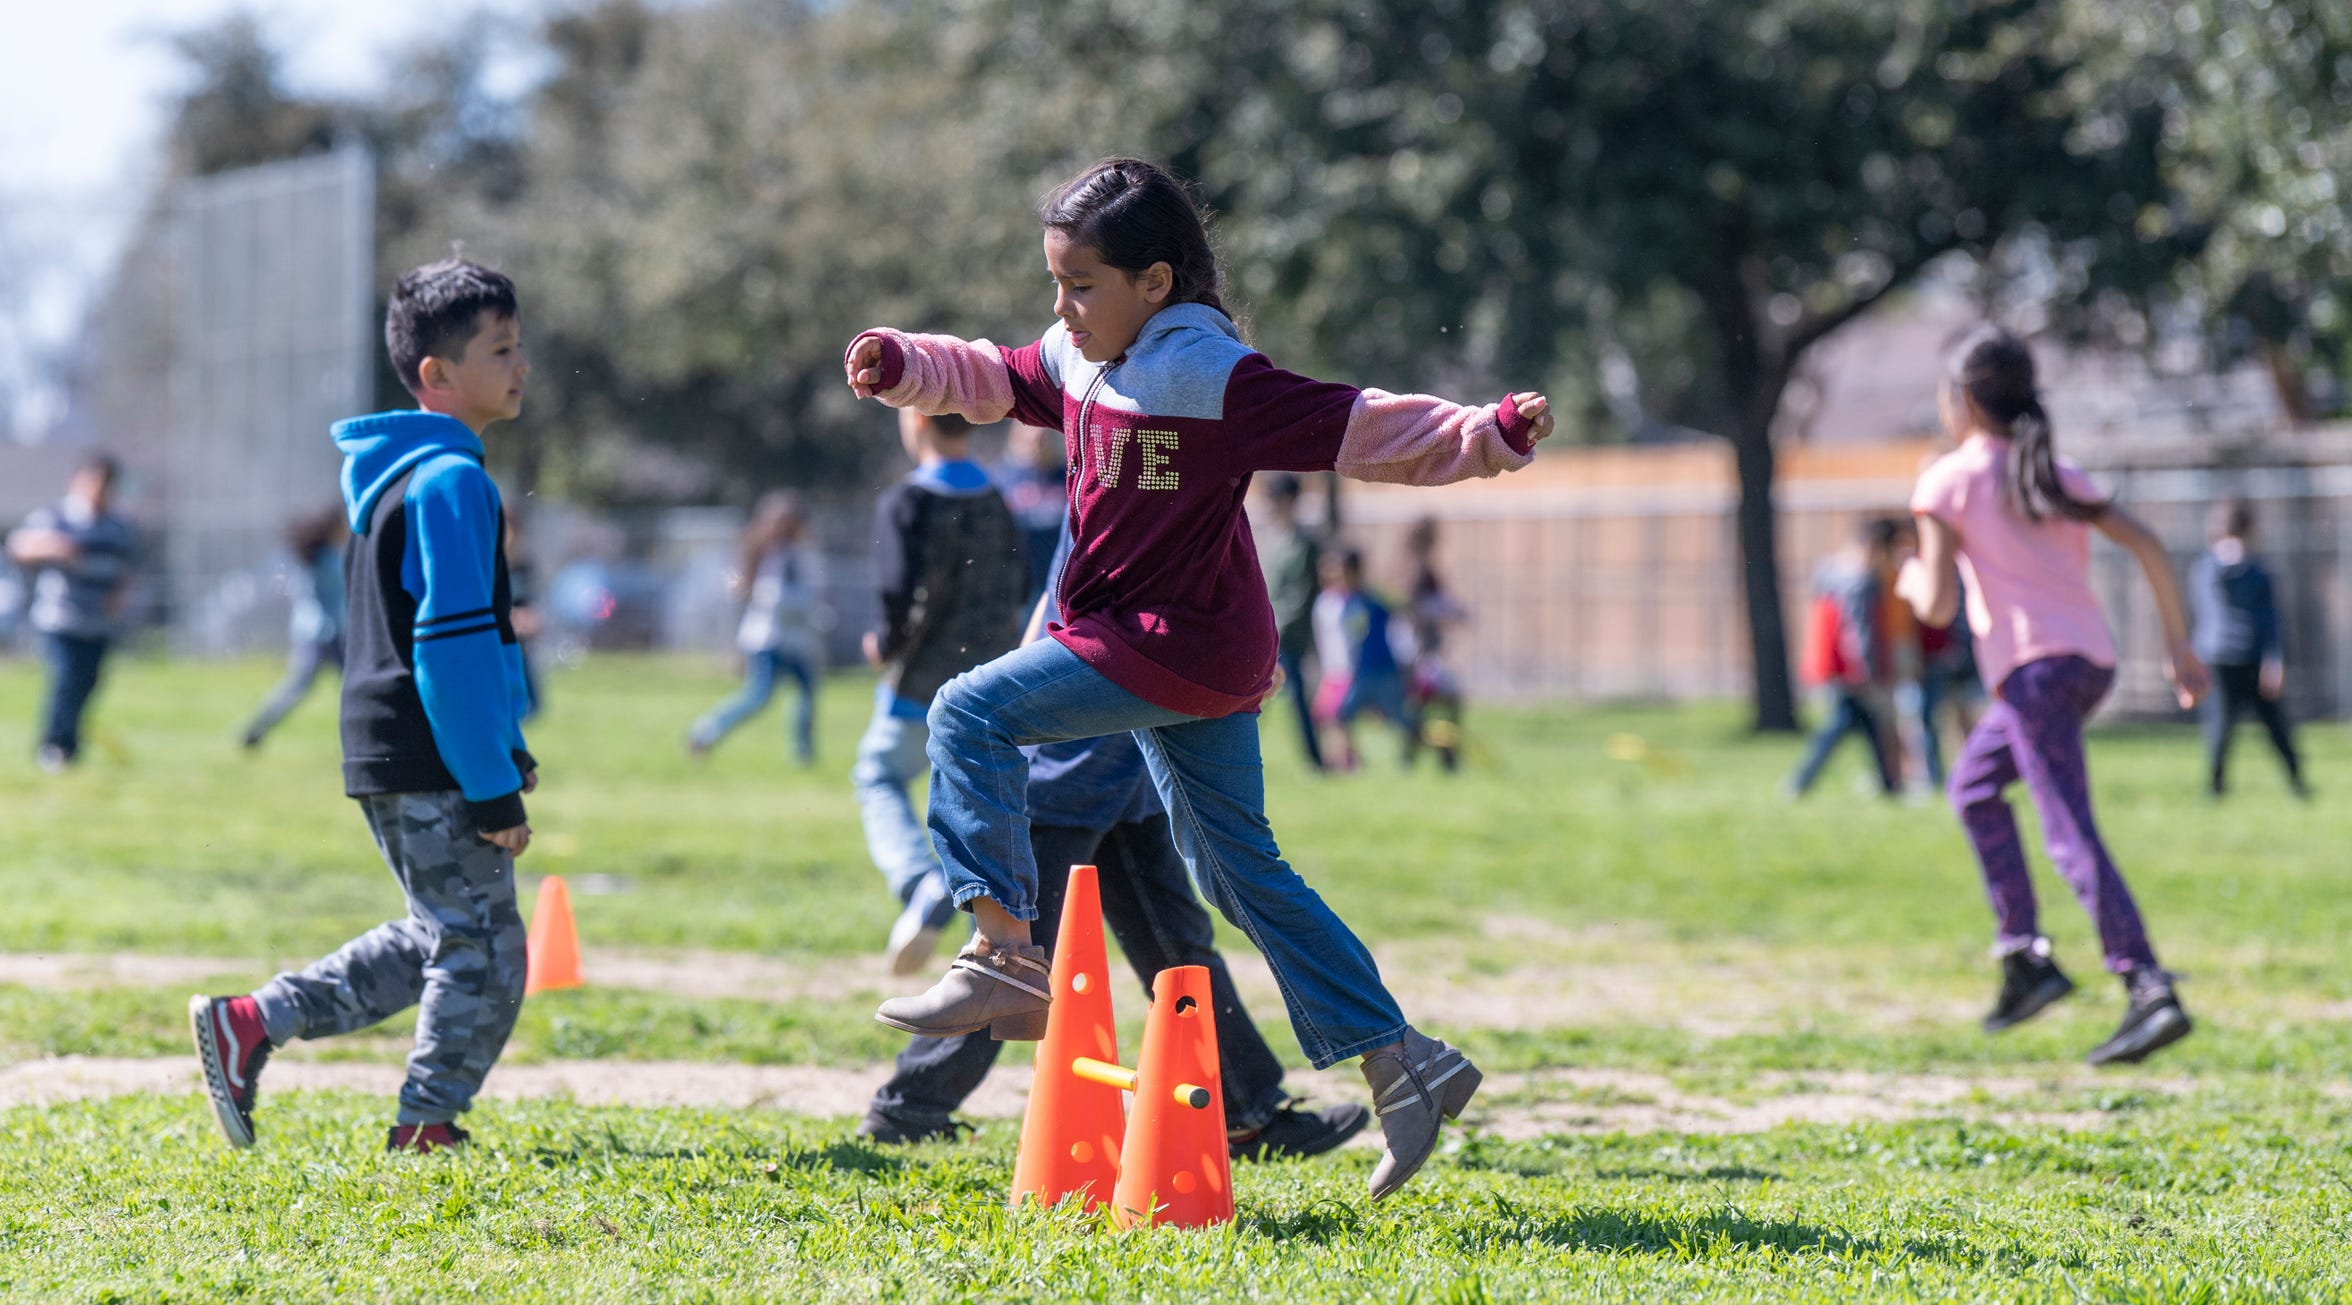 Second grader Aaliyah Manriquez jumps in the circuit exercises during Pro-Youth / HEART program for students at Viva Blunt School in Visalia on Wednesday, March 13, 2019.